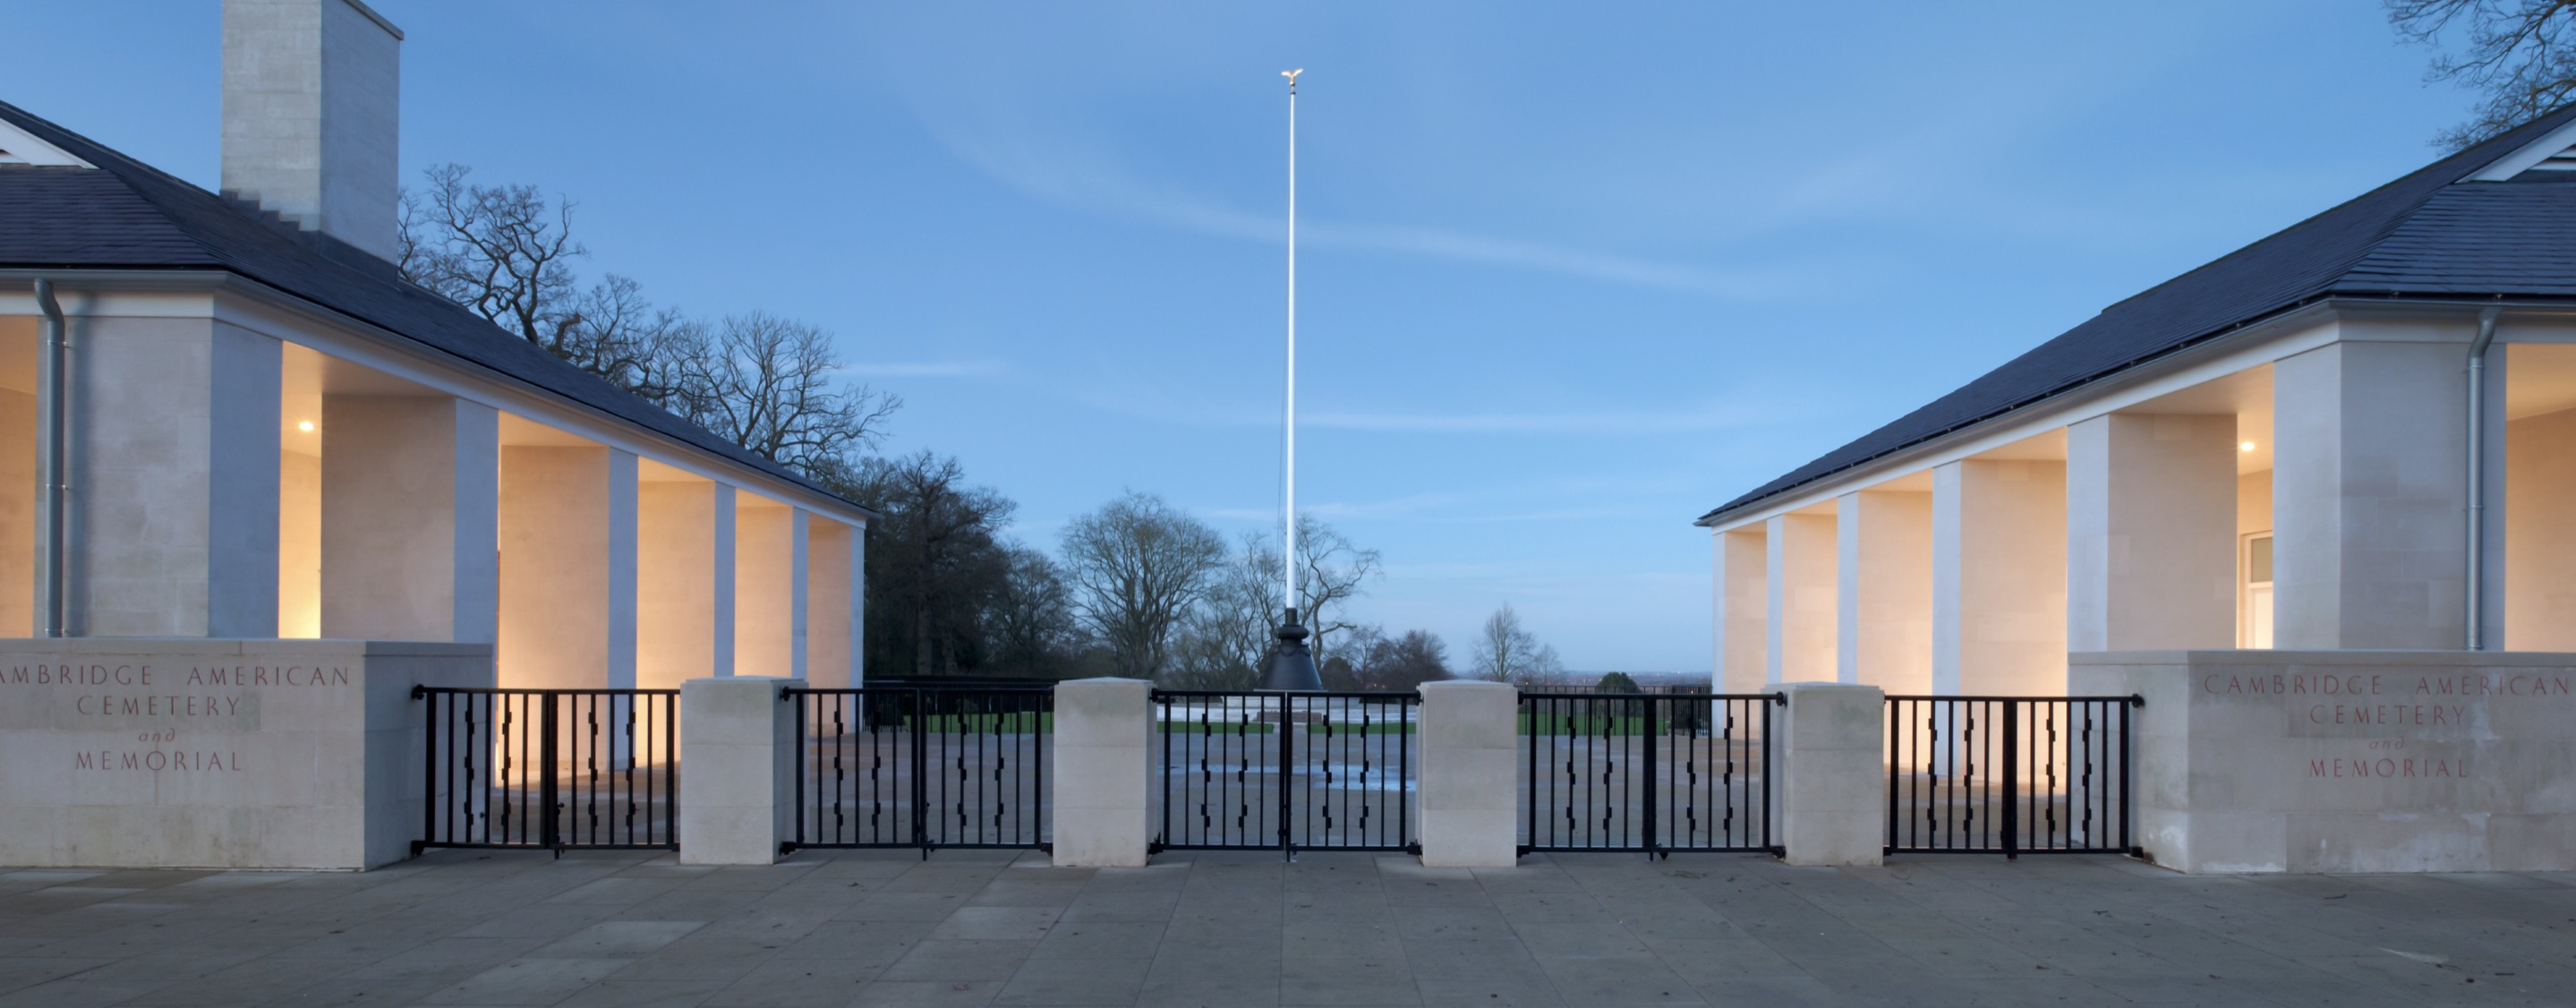 American Cemetery, Madingley